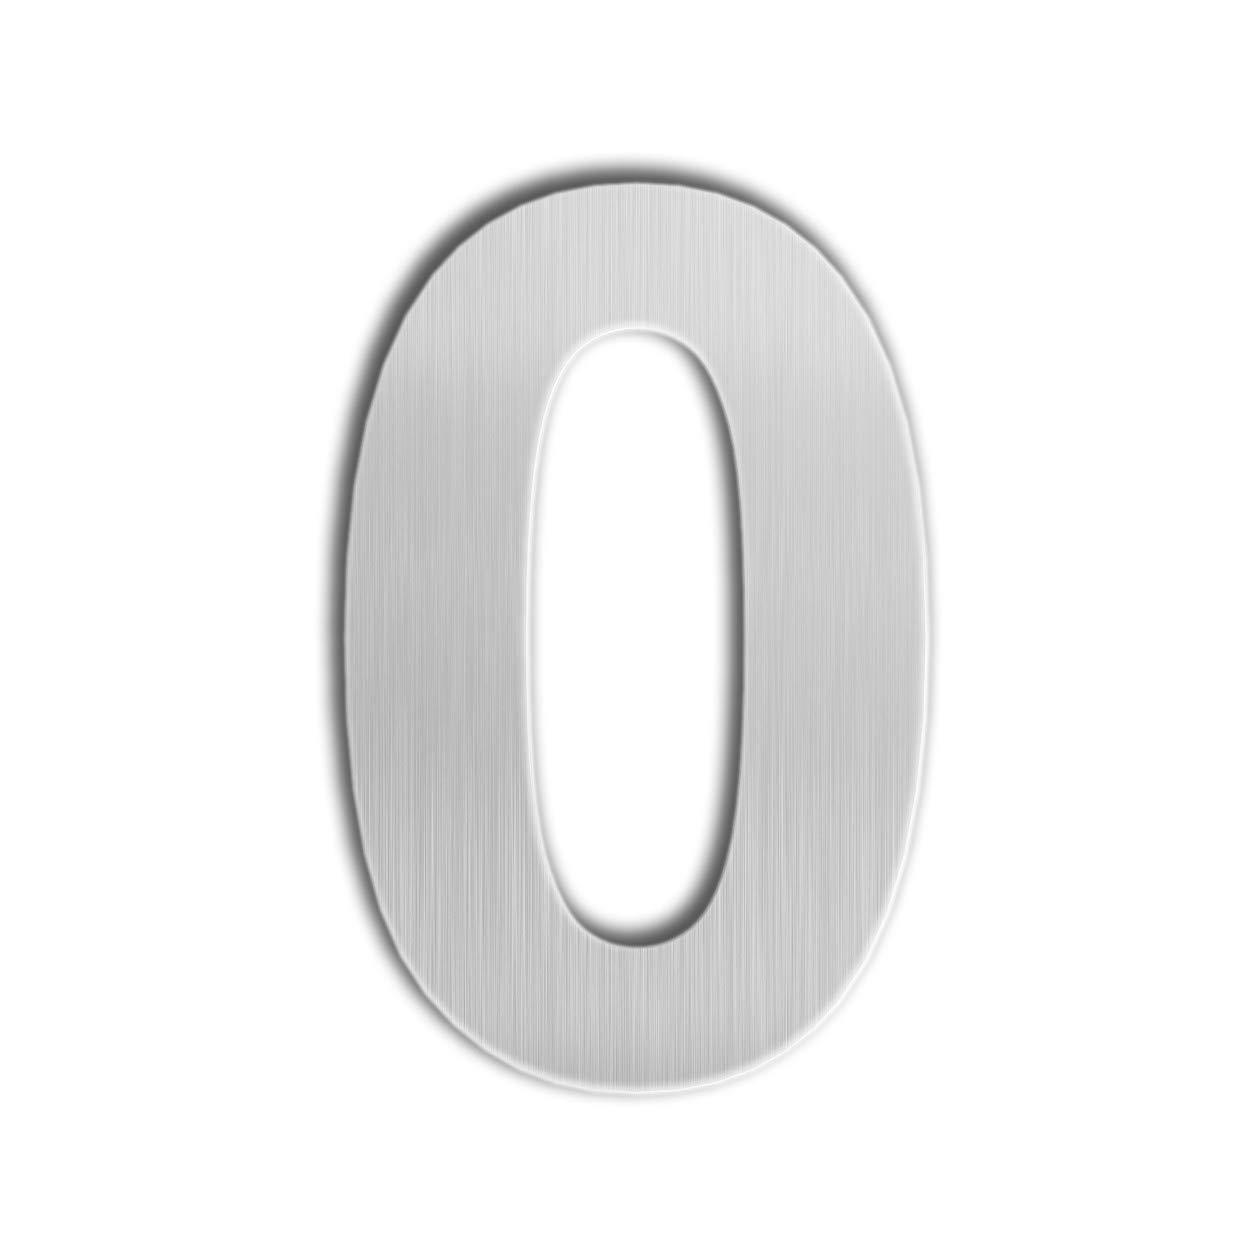 Qt modern house number super large 12 inch brushed stainless steel number 0 zero floating appearance easy to install and made of solid 304